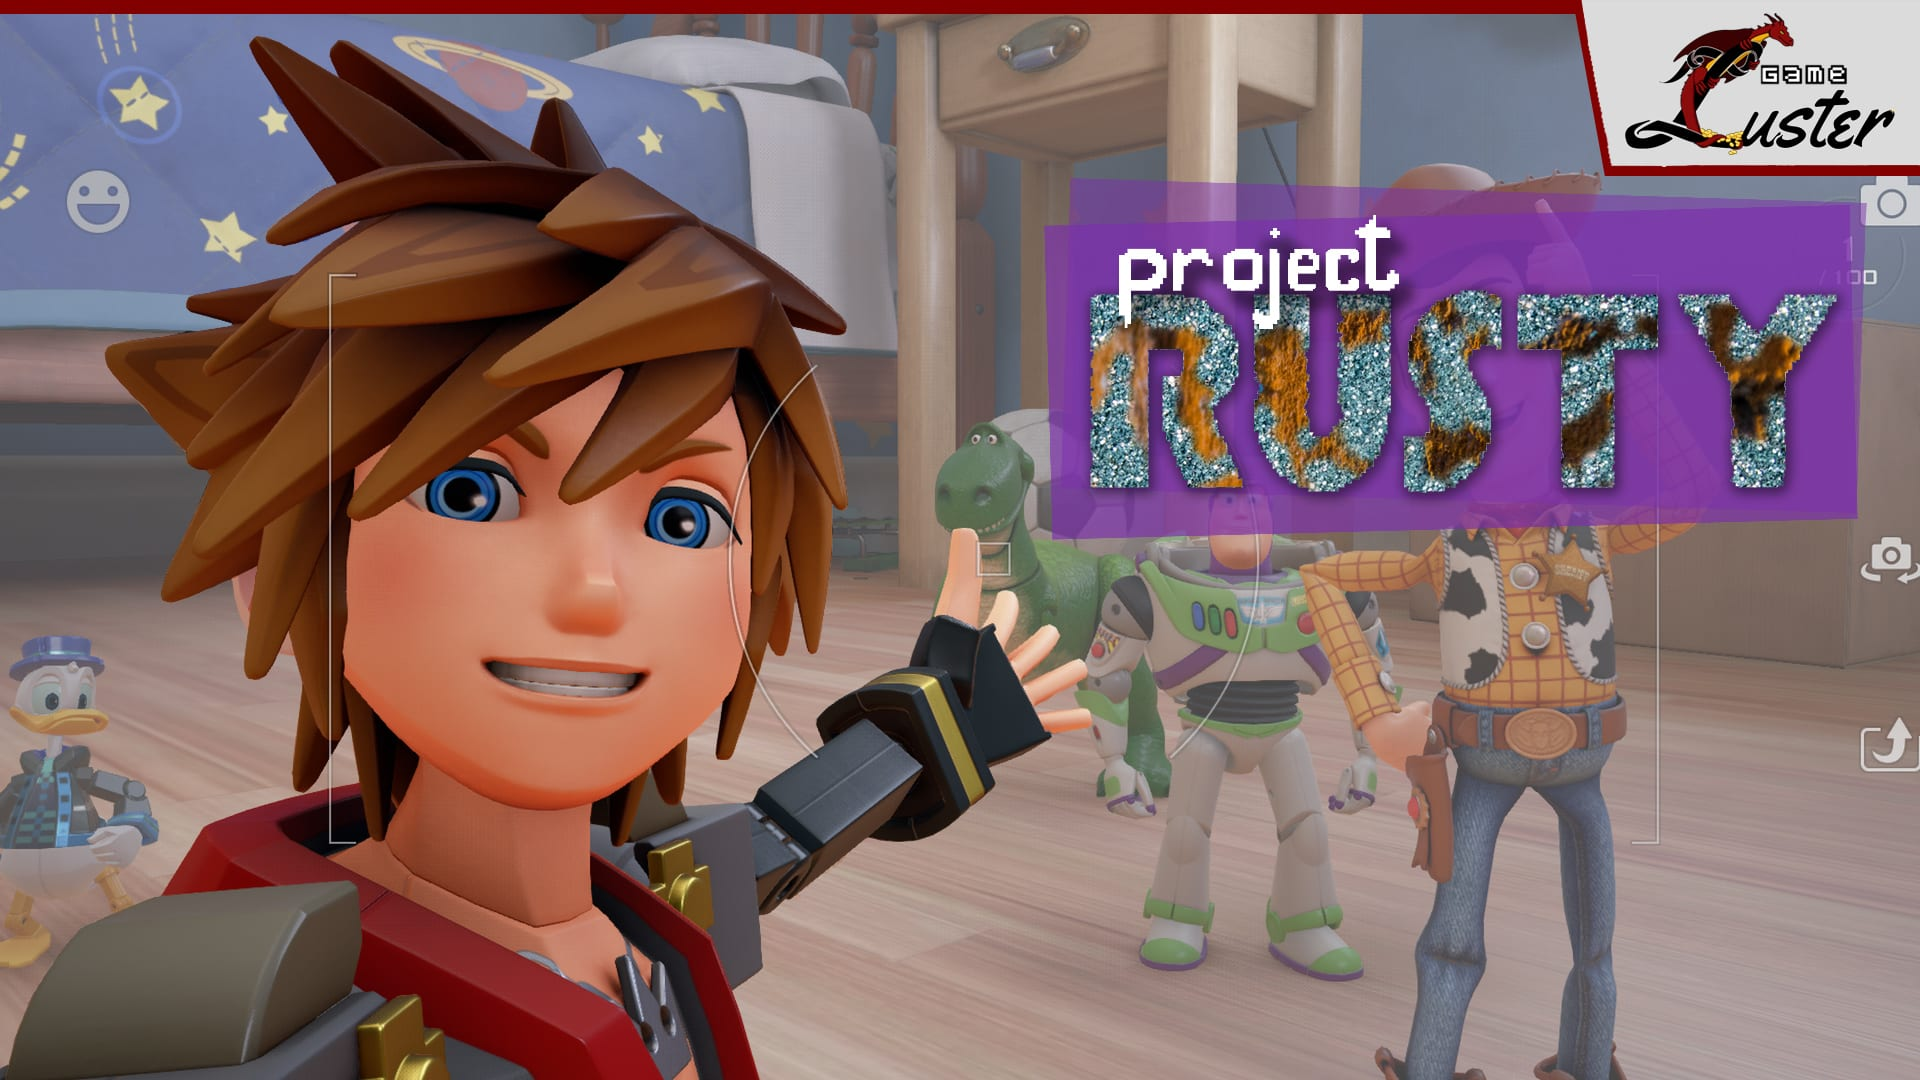 Project Rusty Kingdom Hearts